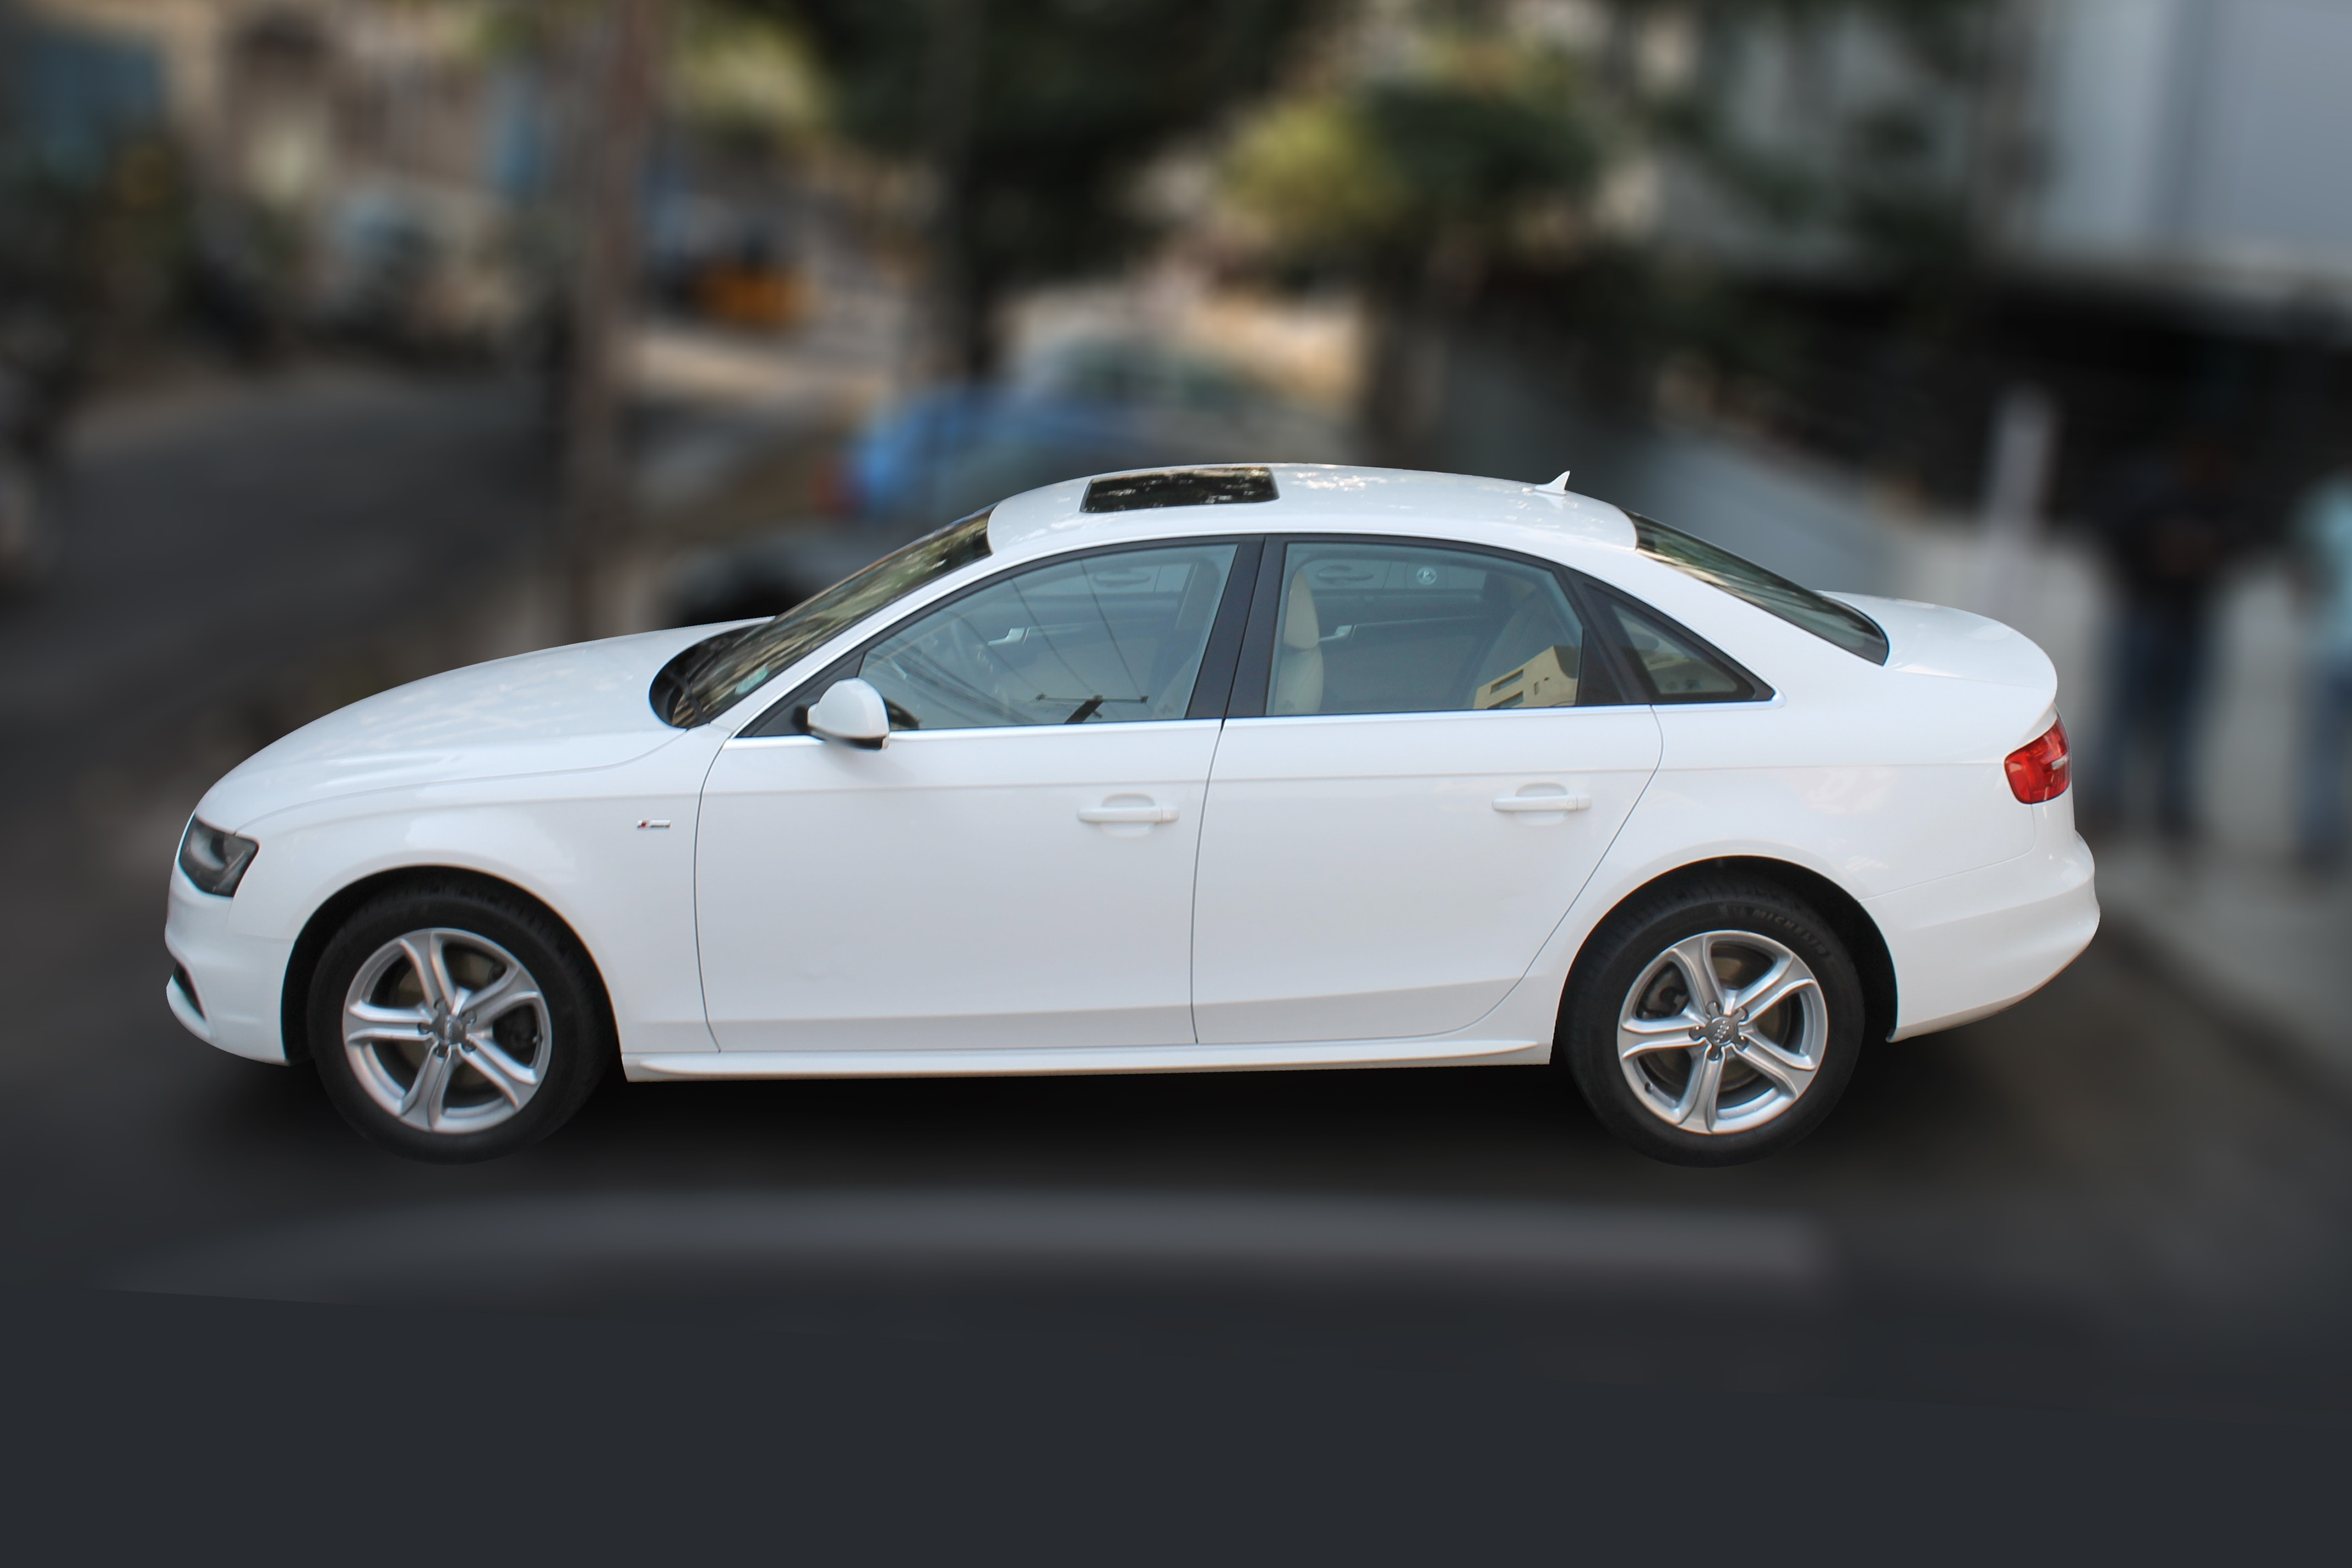 AUDI A4 2.0( IBIS WHITE COLOR, DIESEL), 2014 model done only 40, 000km in absolute mint condition. Buy now and get one year service pack from us. For further info call 7569696666.